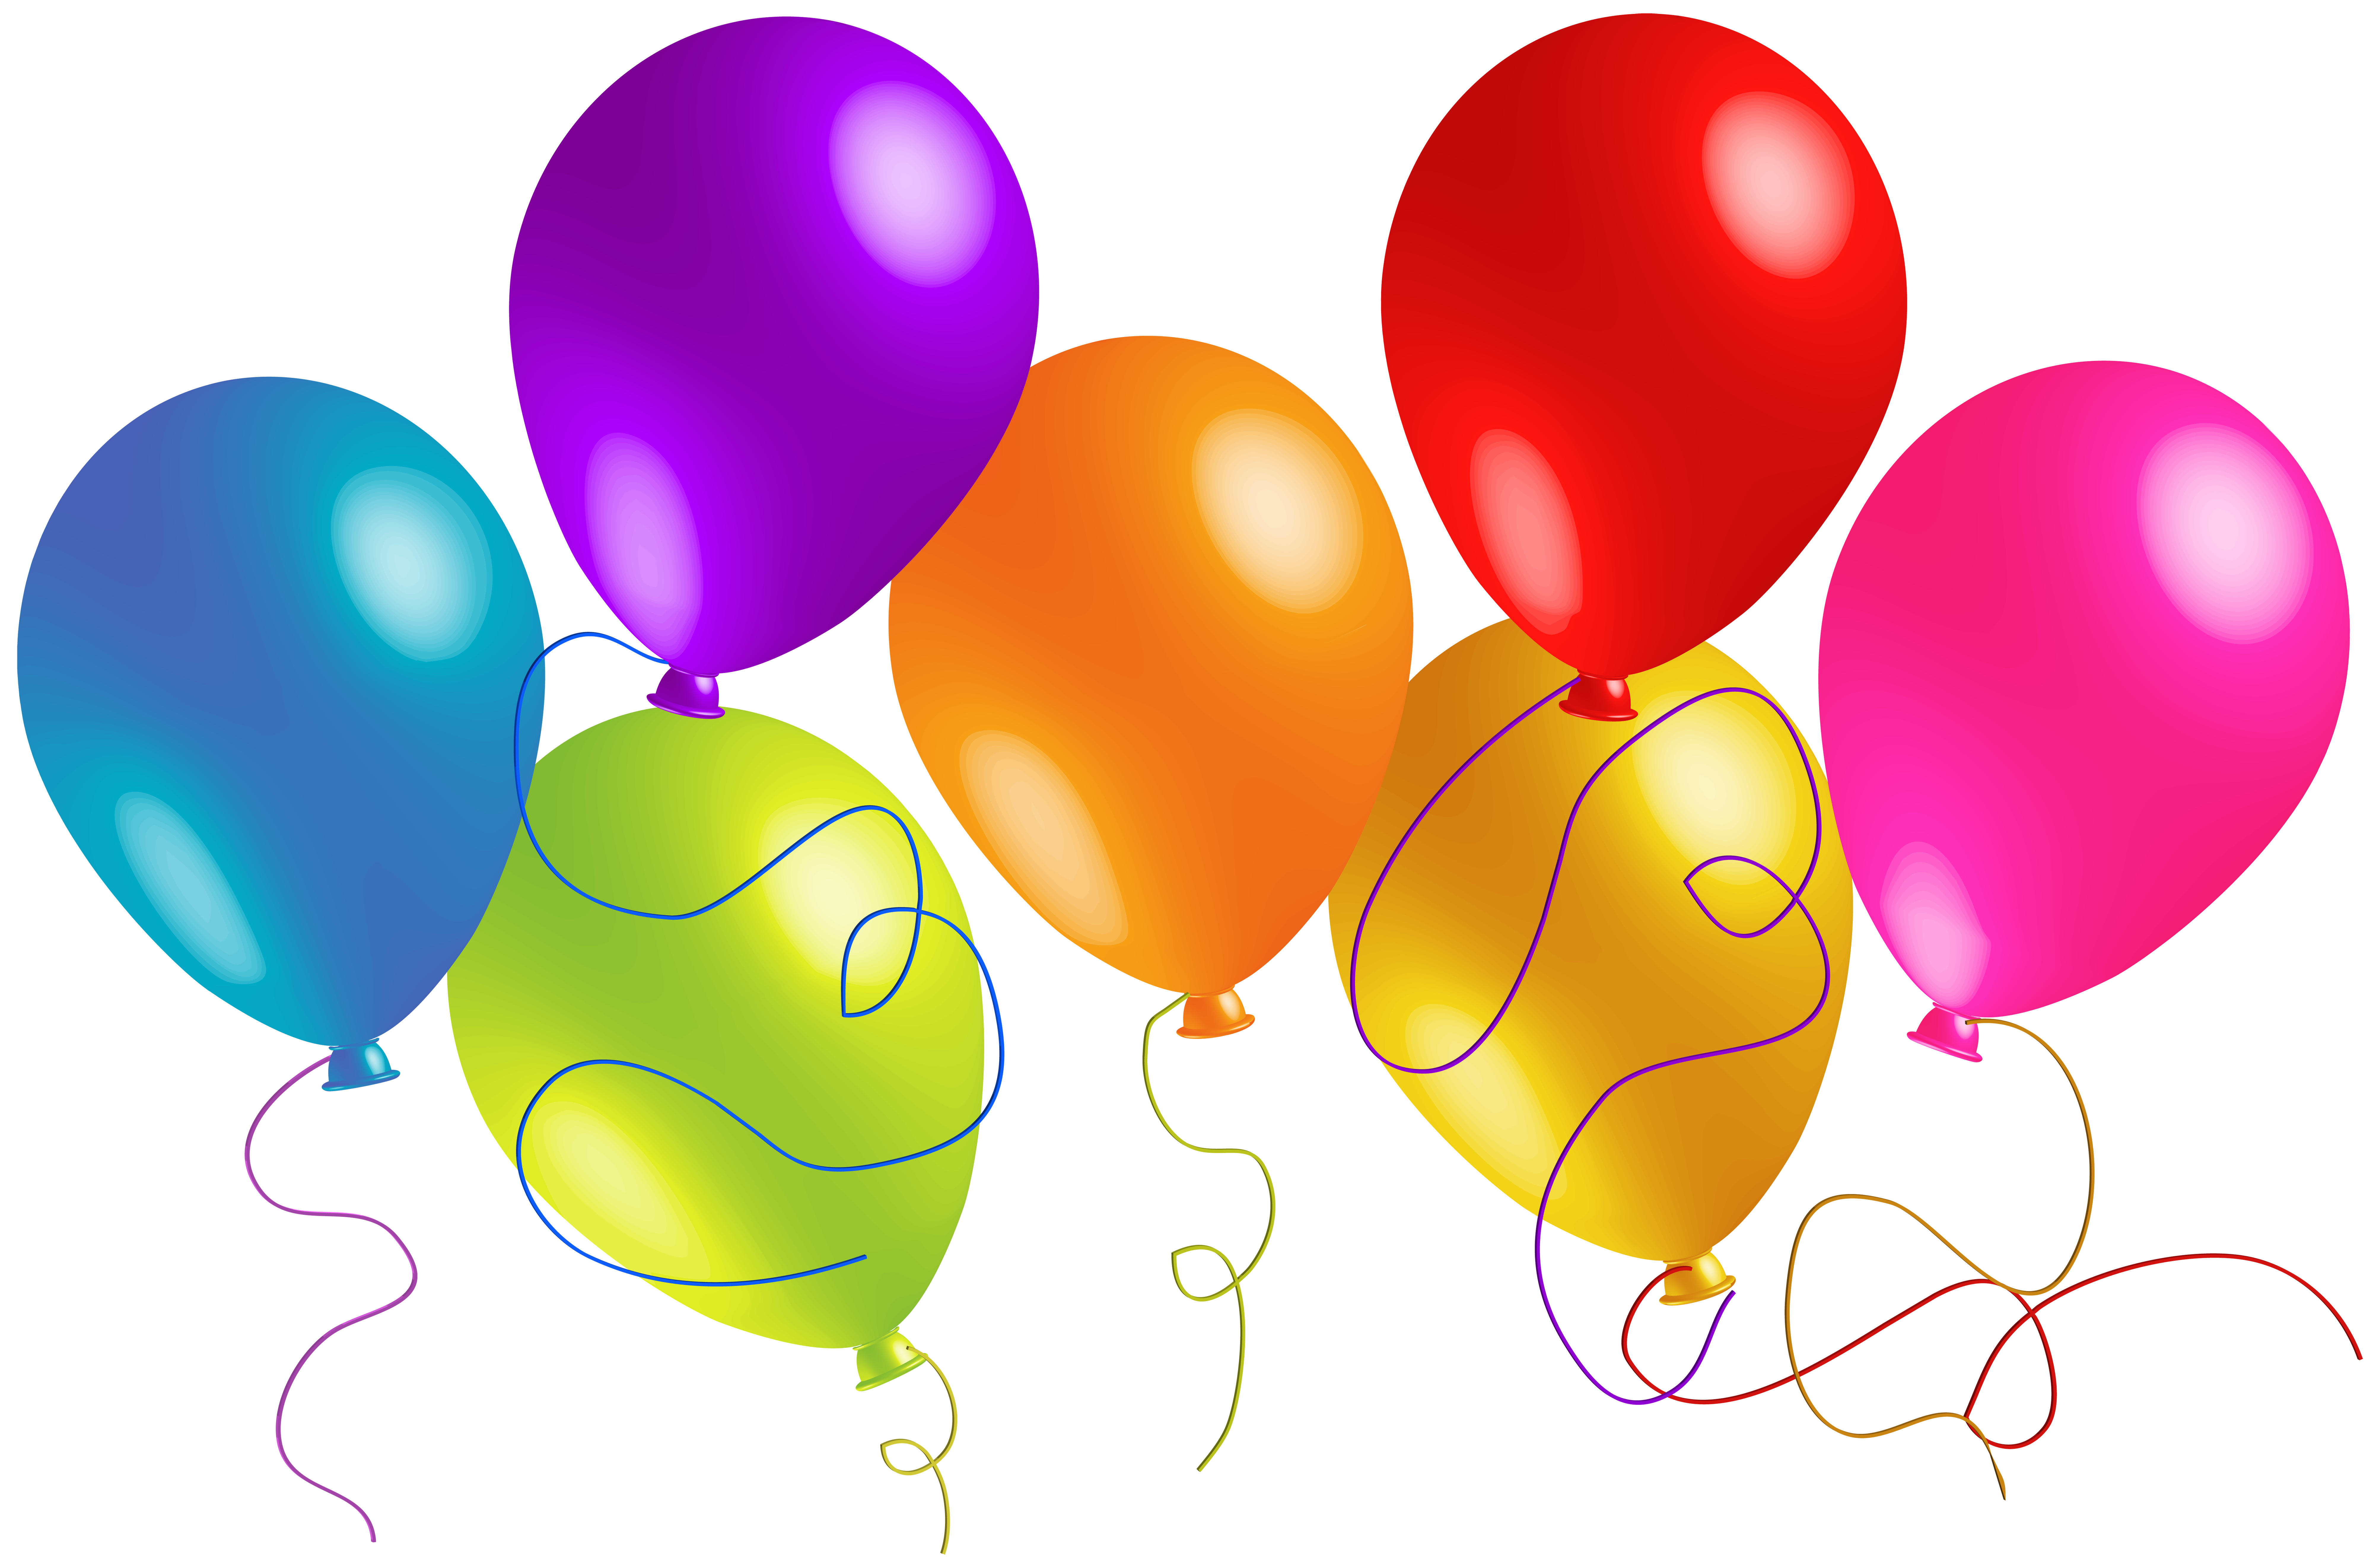 Free Clip Art Balloons - Free Clipart Balloons